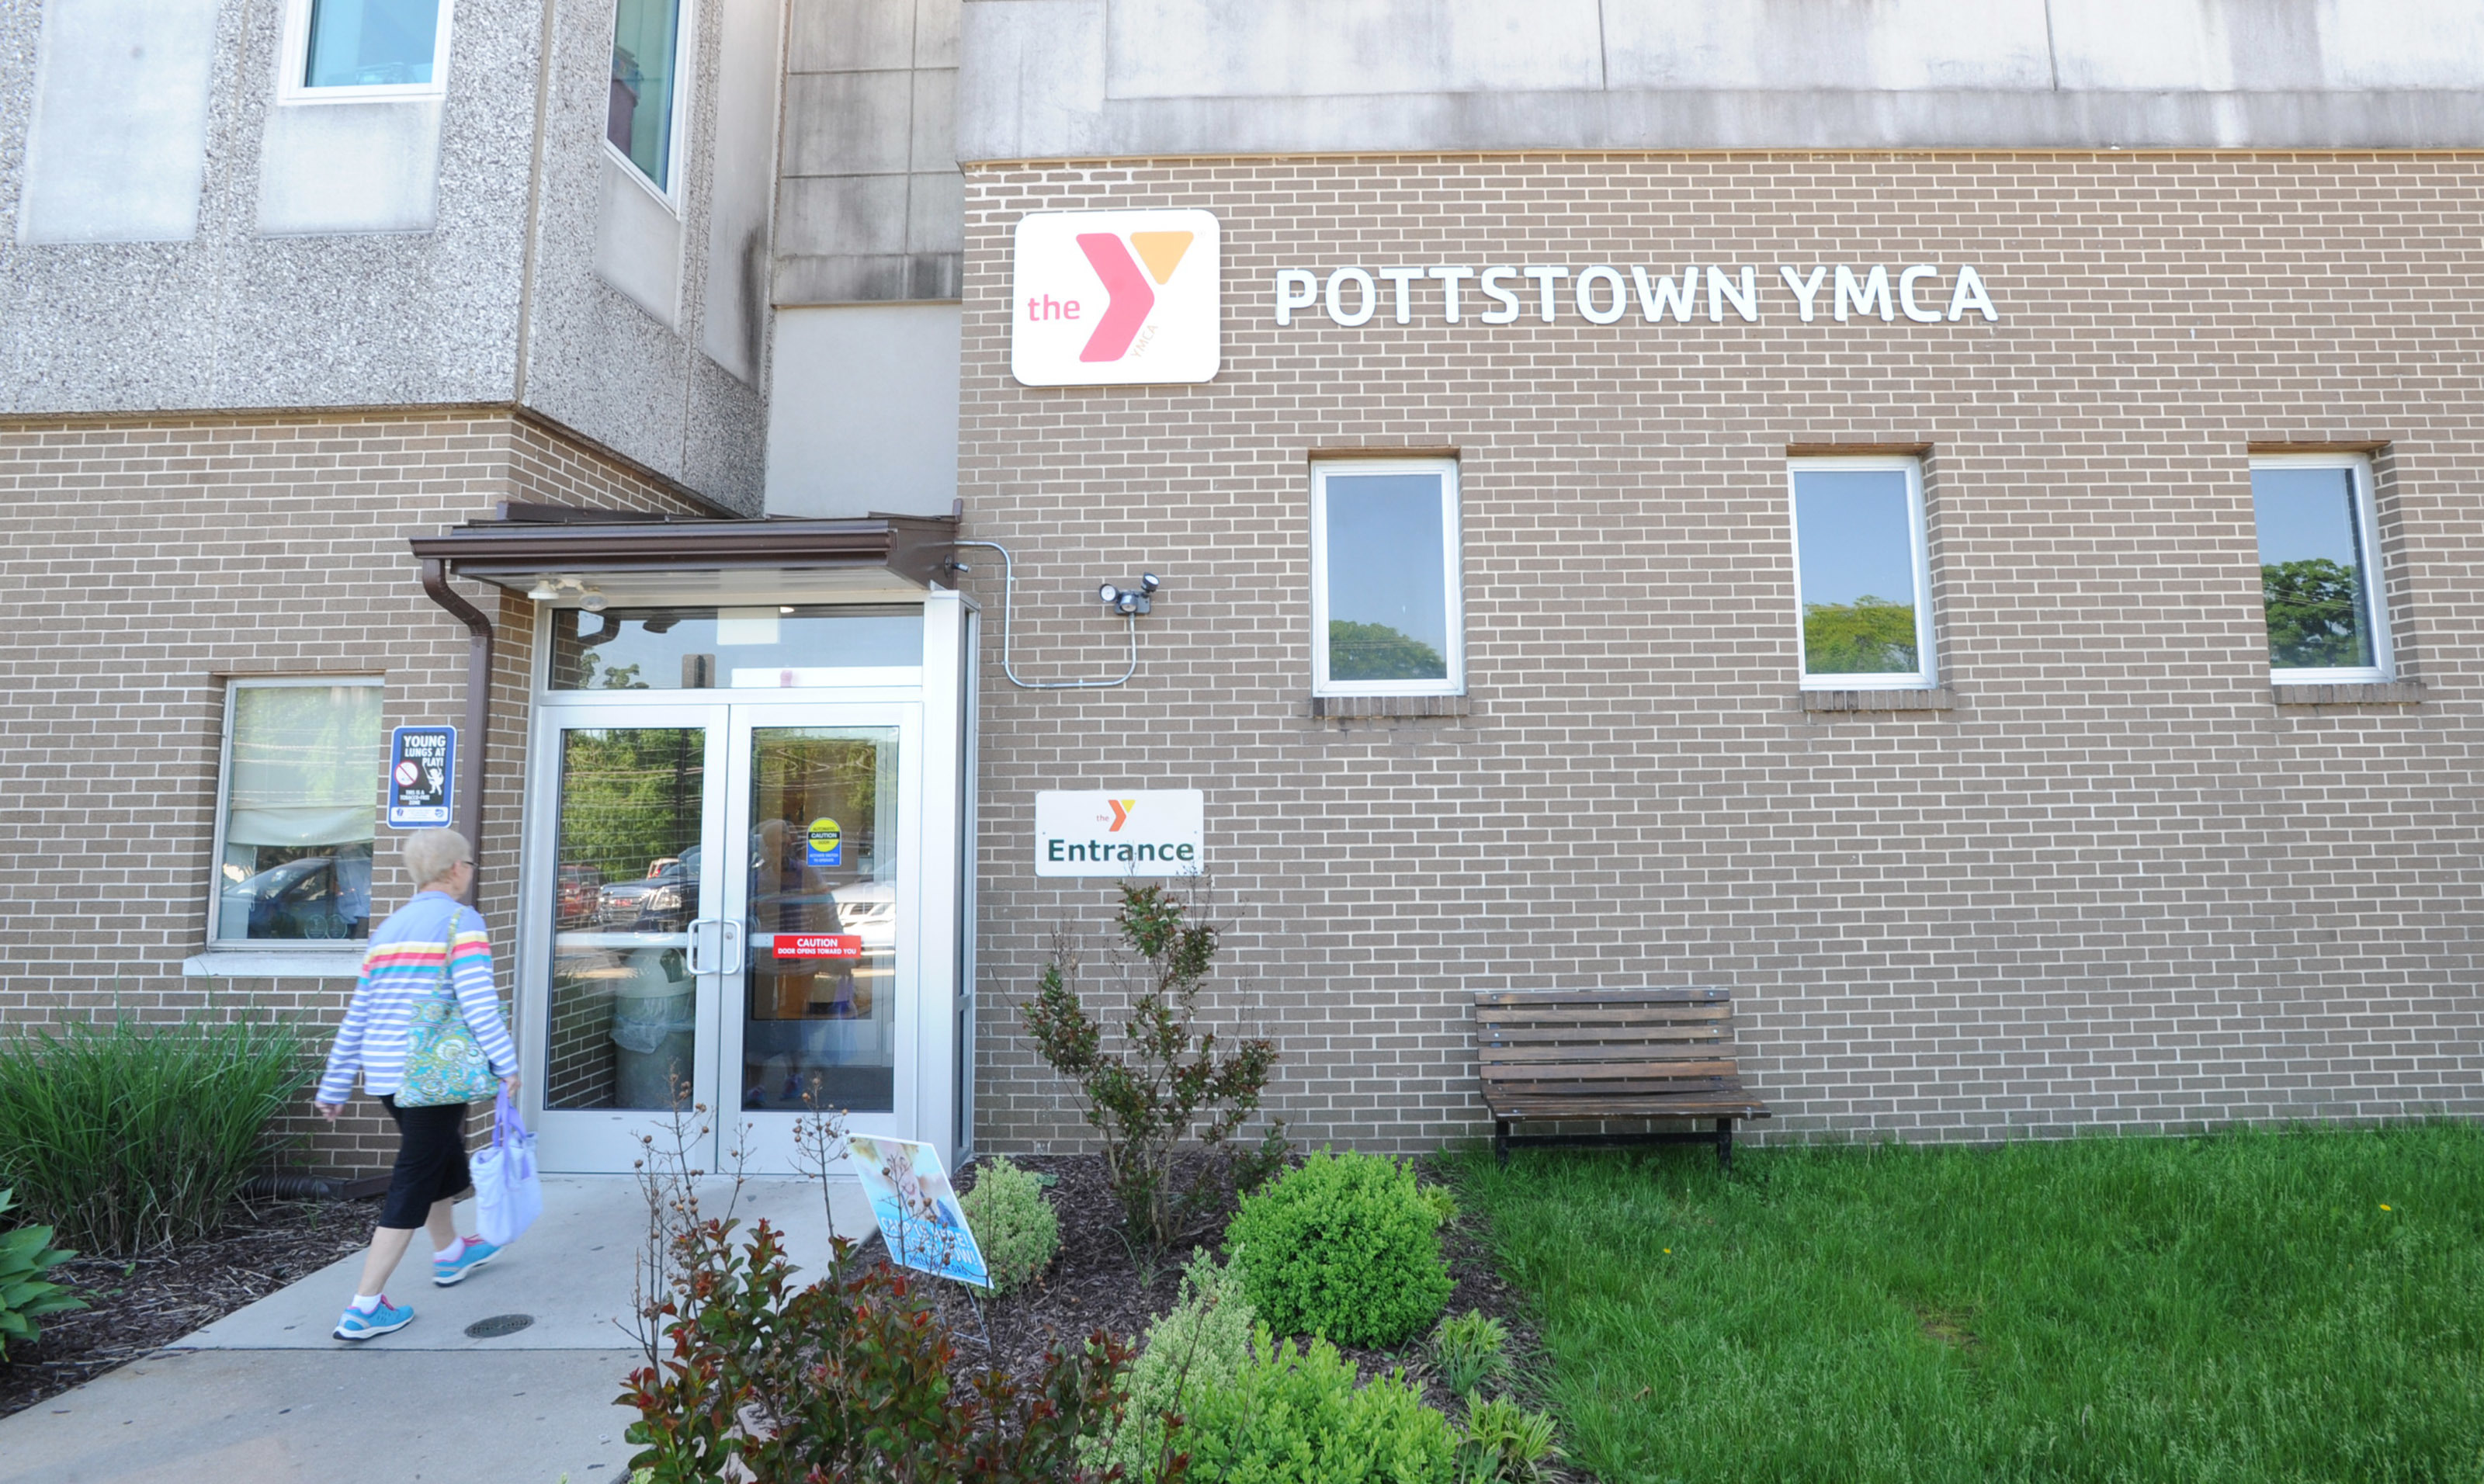 The Little YMCA That Could: The Pottstown Branch of the regional YMCA network is staying open after a frantic advocacy effort that others should look to as inspiration for how to keep vital institutions alive in economically vulnerable towns like this once-soaring industrial town between Philly and Reading, Pa.